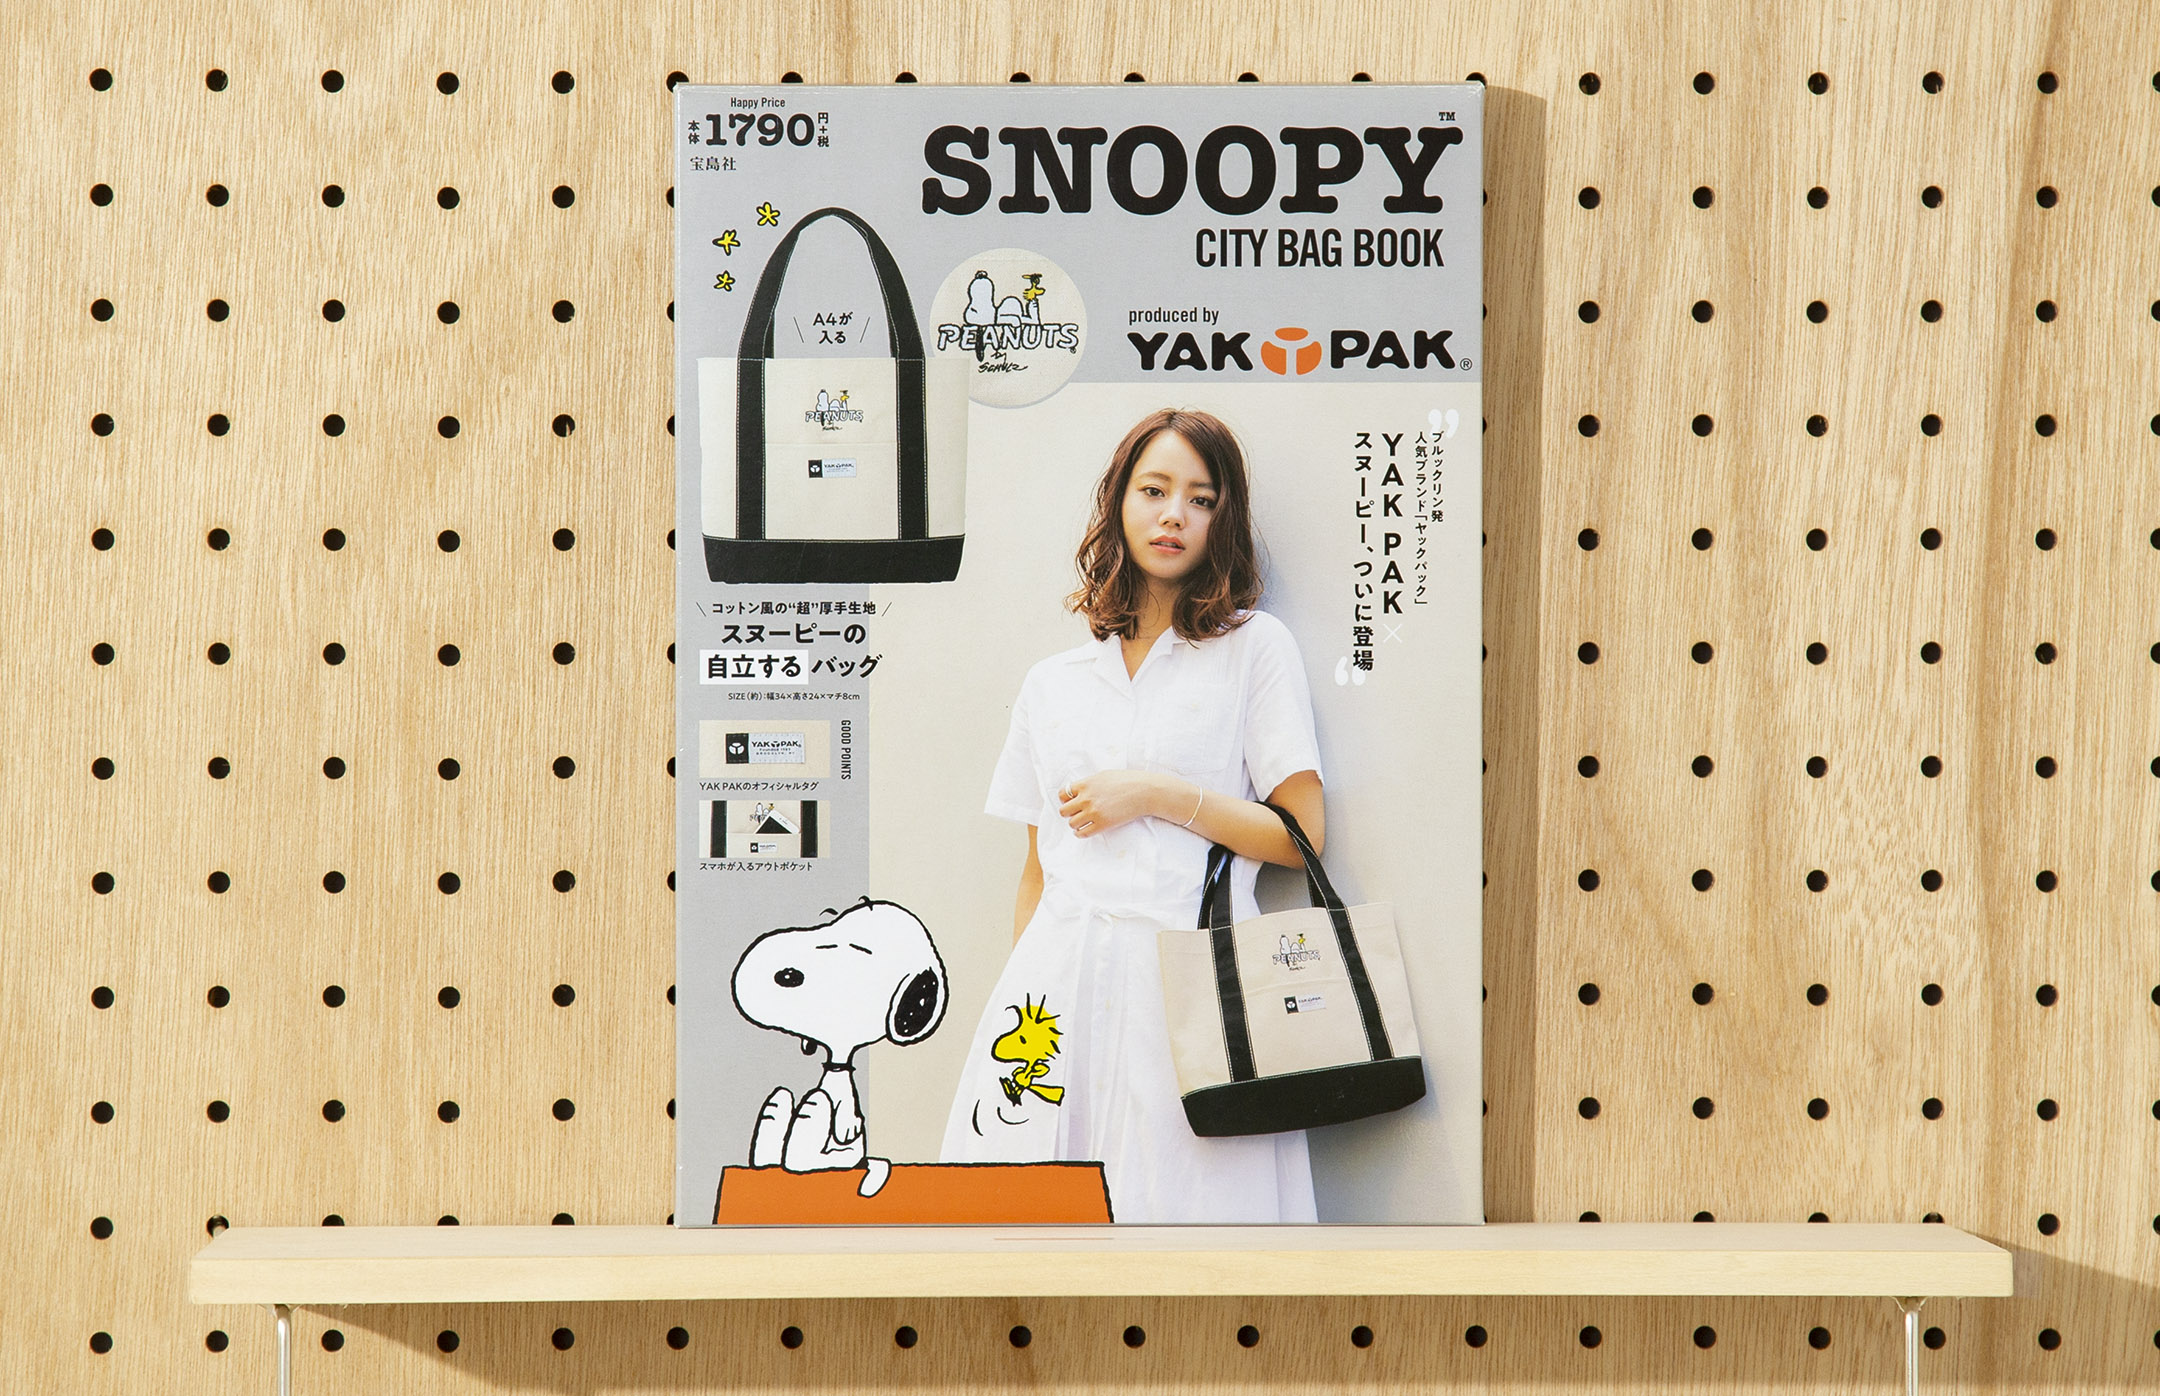 soda design SNOOPY CITY BAG BOOK produced by YAKPAK